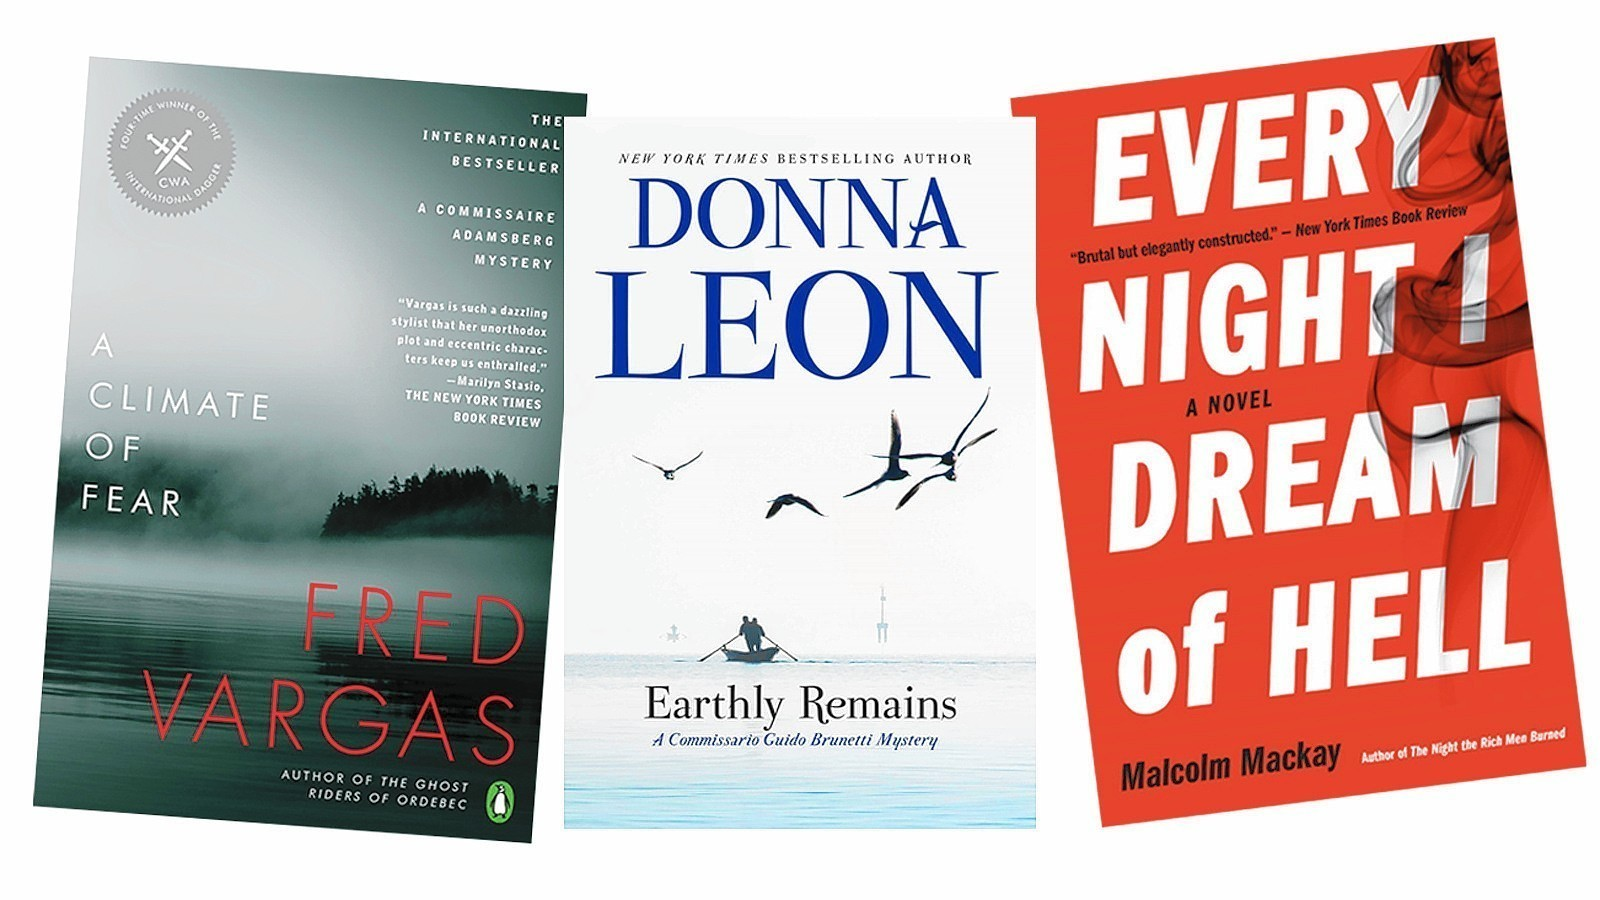 Earthly Remains By Donna Leon Leads This Weeks Crime Fiction Roundup